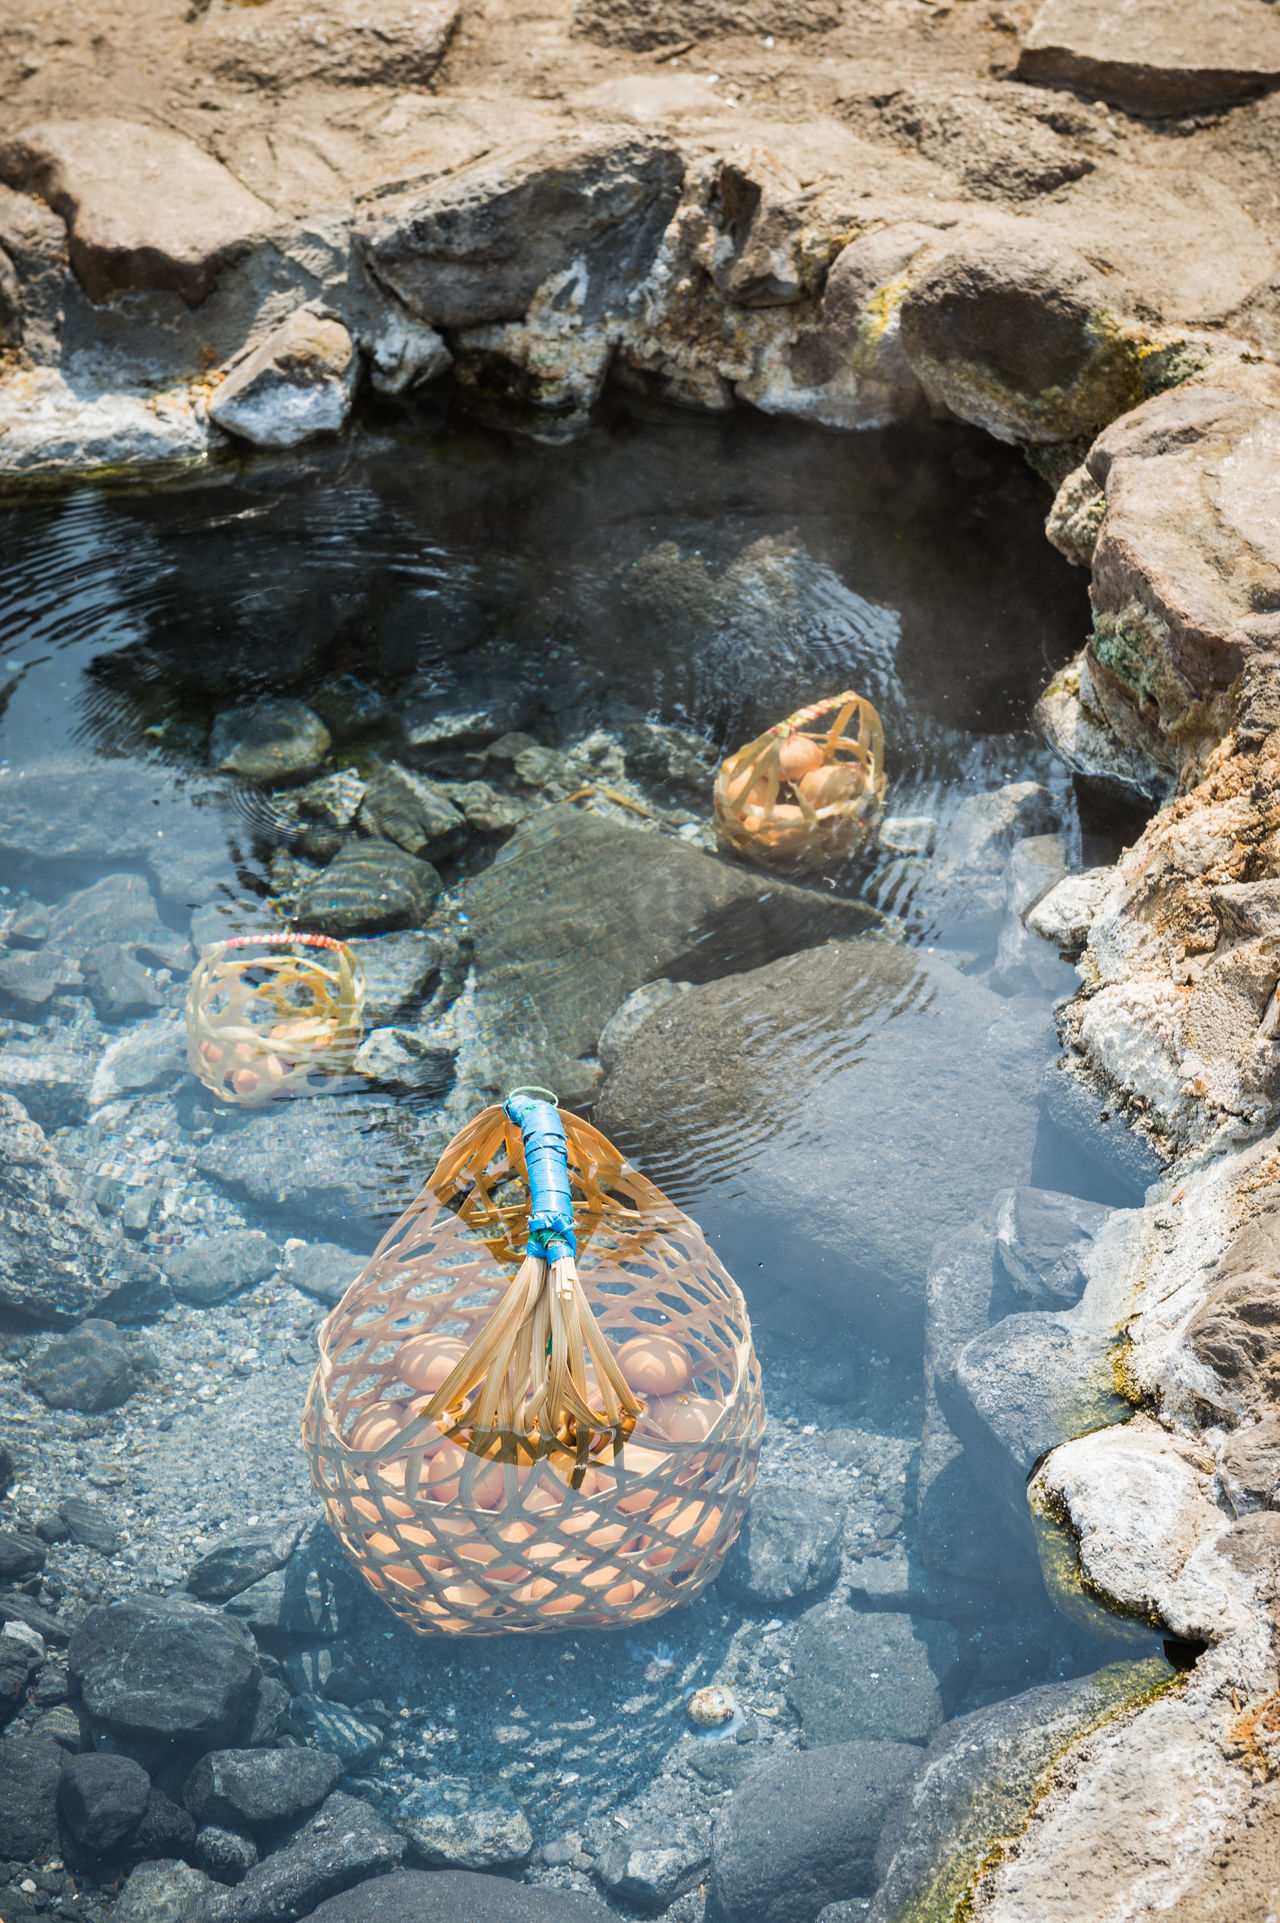 Boil egg in hot springs Basket Black Boiled Eggs Create Day Egg Food And Drink Gray Healthy Eating Healthy Food High Angle View Hot Hot Springs Natural Nature No People Object Onsen Onsen Egg Outdoors Pond Stone Transparent Travel Water